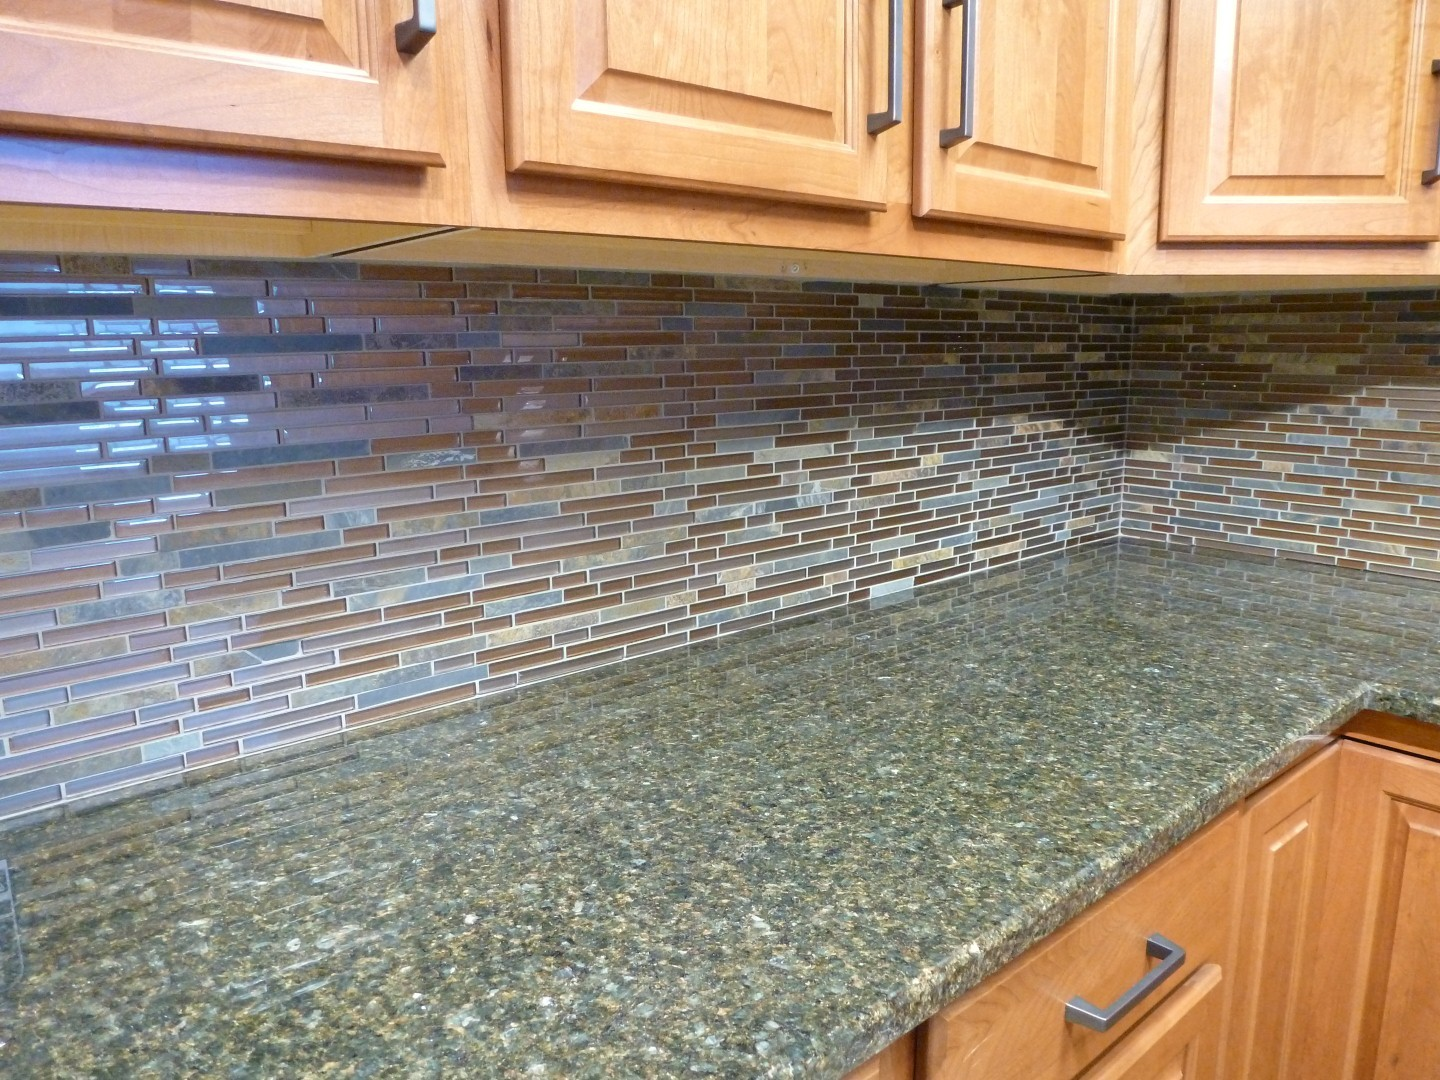 Al2650 Glass Tile And Stone Rustic Slate Mosaic Backsplash